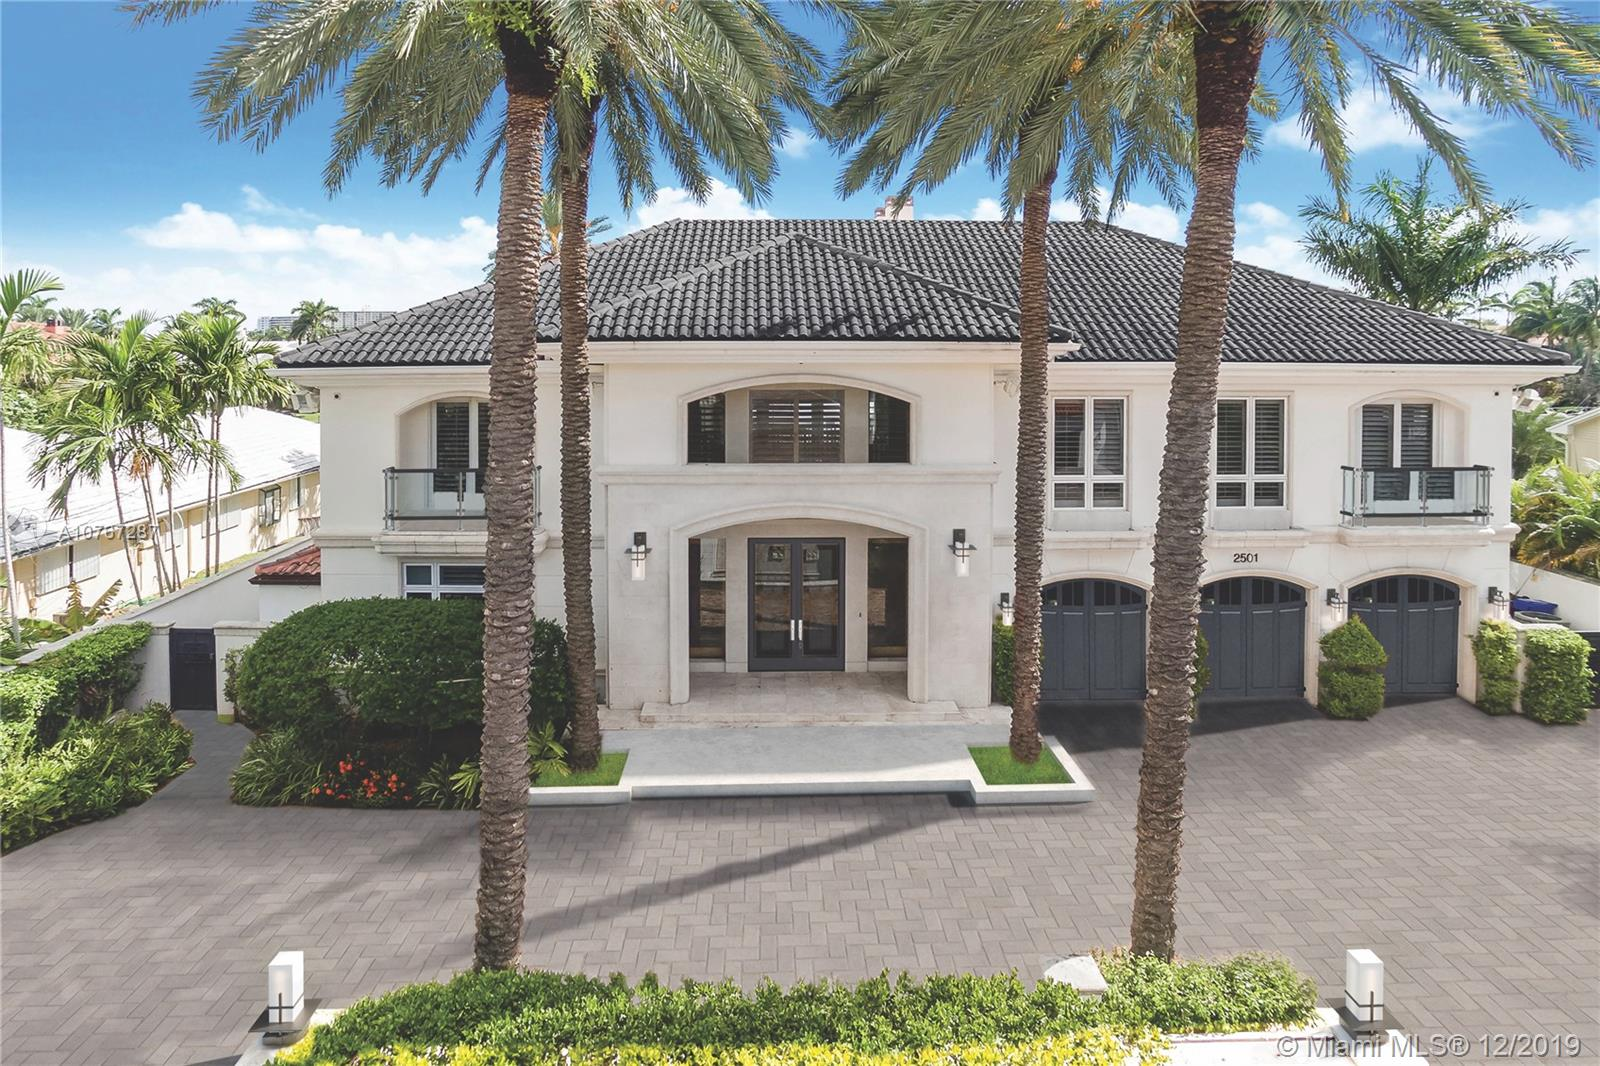 Customize this Luxury Waterfront Estate, in Prestigious Harbor Beach. This Gated estate has over 8,707SF with 7 bedrooms, 7.5 baths and can accommodate a Mega yacht, at its private dock w/dual power, water stations and 105' of deep water, minutes to the ocean w/direct access/no bridges. Features a circular driveway w/fountain, splendid high ceilings, 3 car garage and 8 new AC's. Master suite with terrace, his and hers walk in closets, elevator, security system, smart home lighting, full sound system, bi-level pools with swimup bar, waterfall and jacuzzi. Private Beach for Harbor Beach residents, security, & extra dockage available. Best Deal in Harbor Beach to Design your Dream Home.Blueprints and actual Sq.Ft. for Living Area is 8,707